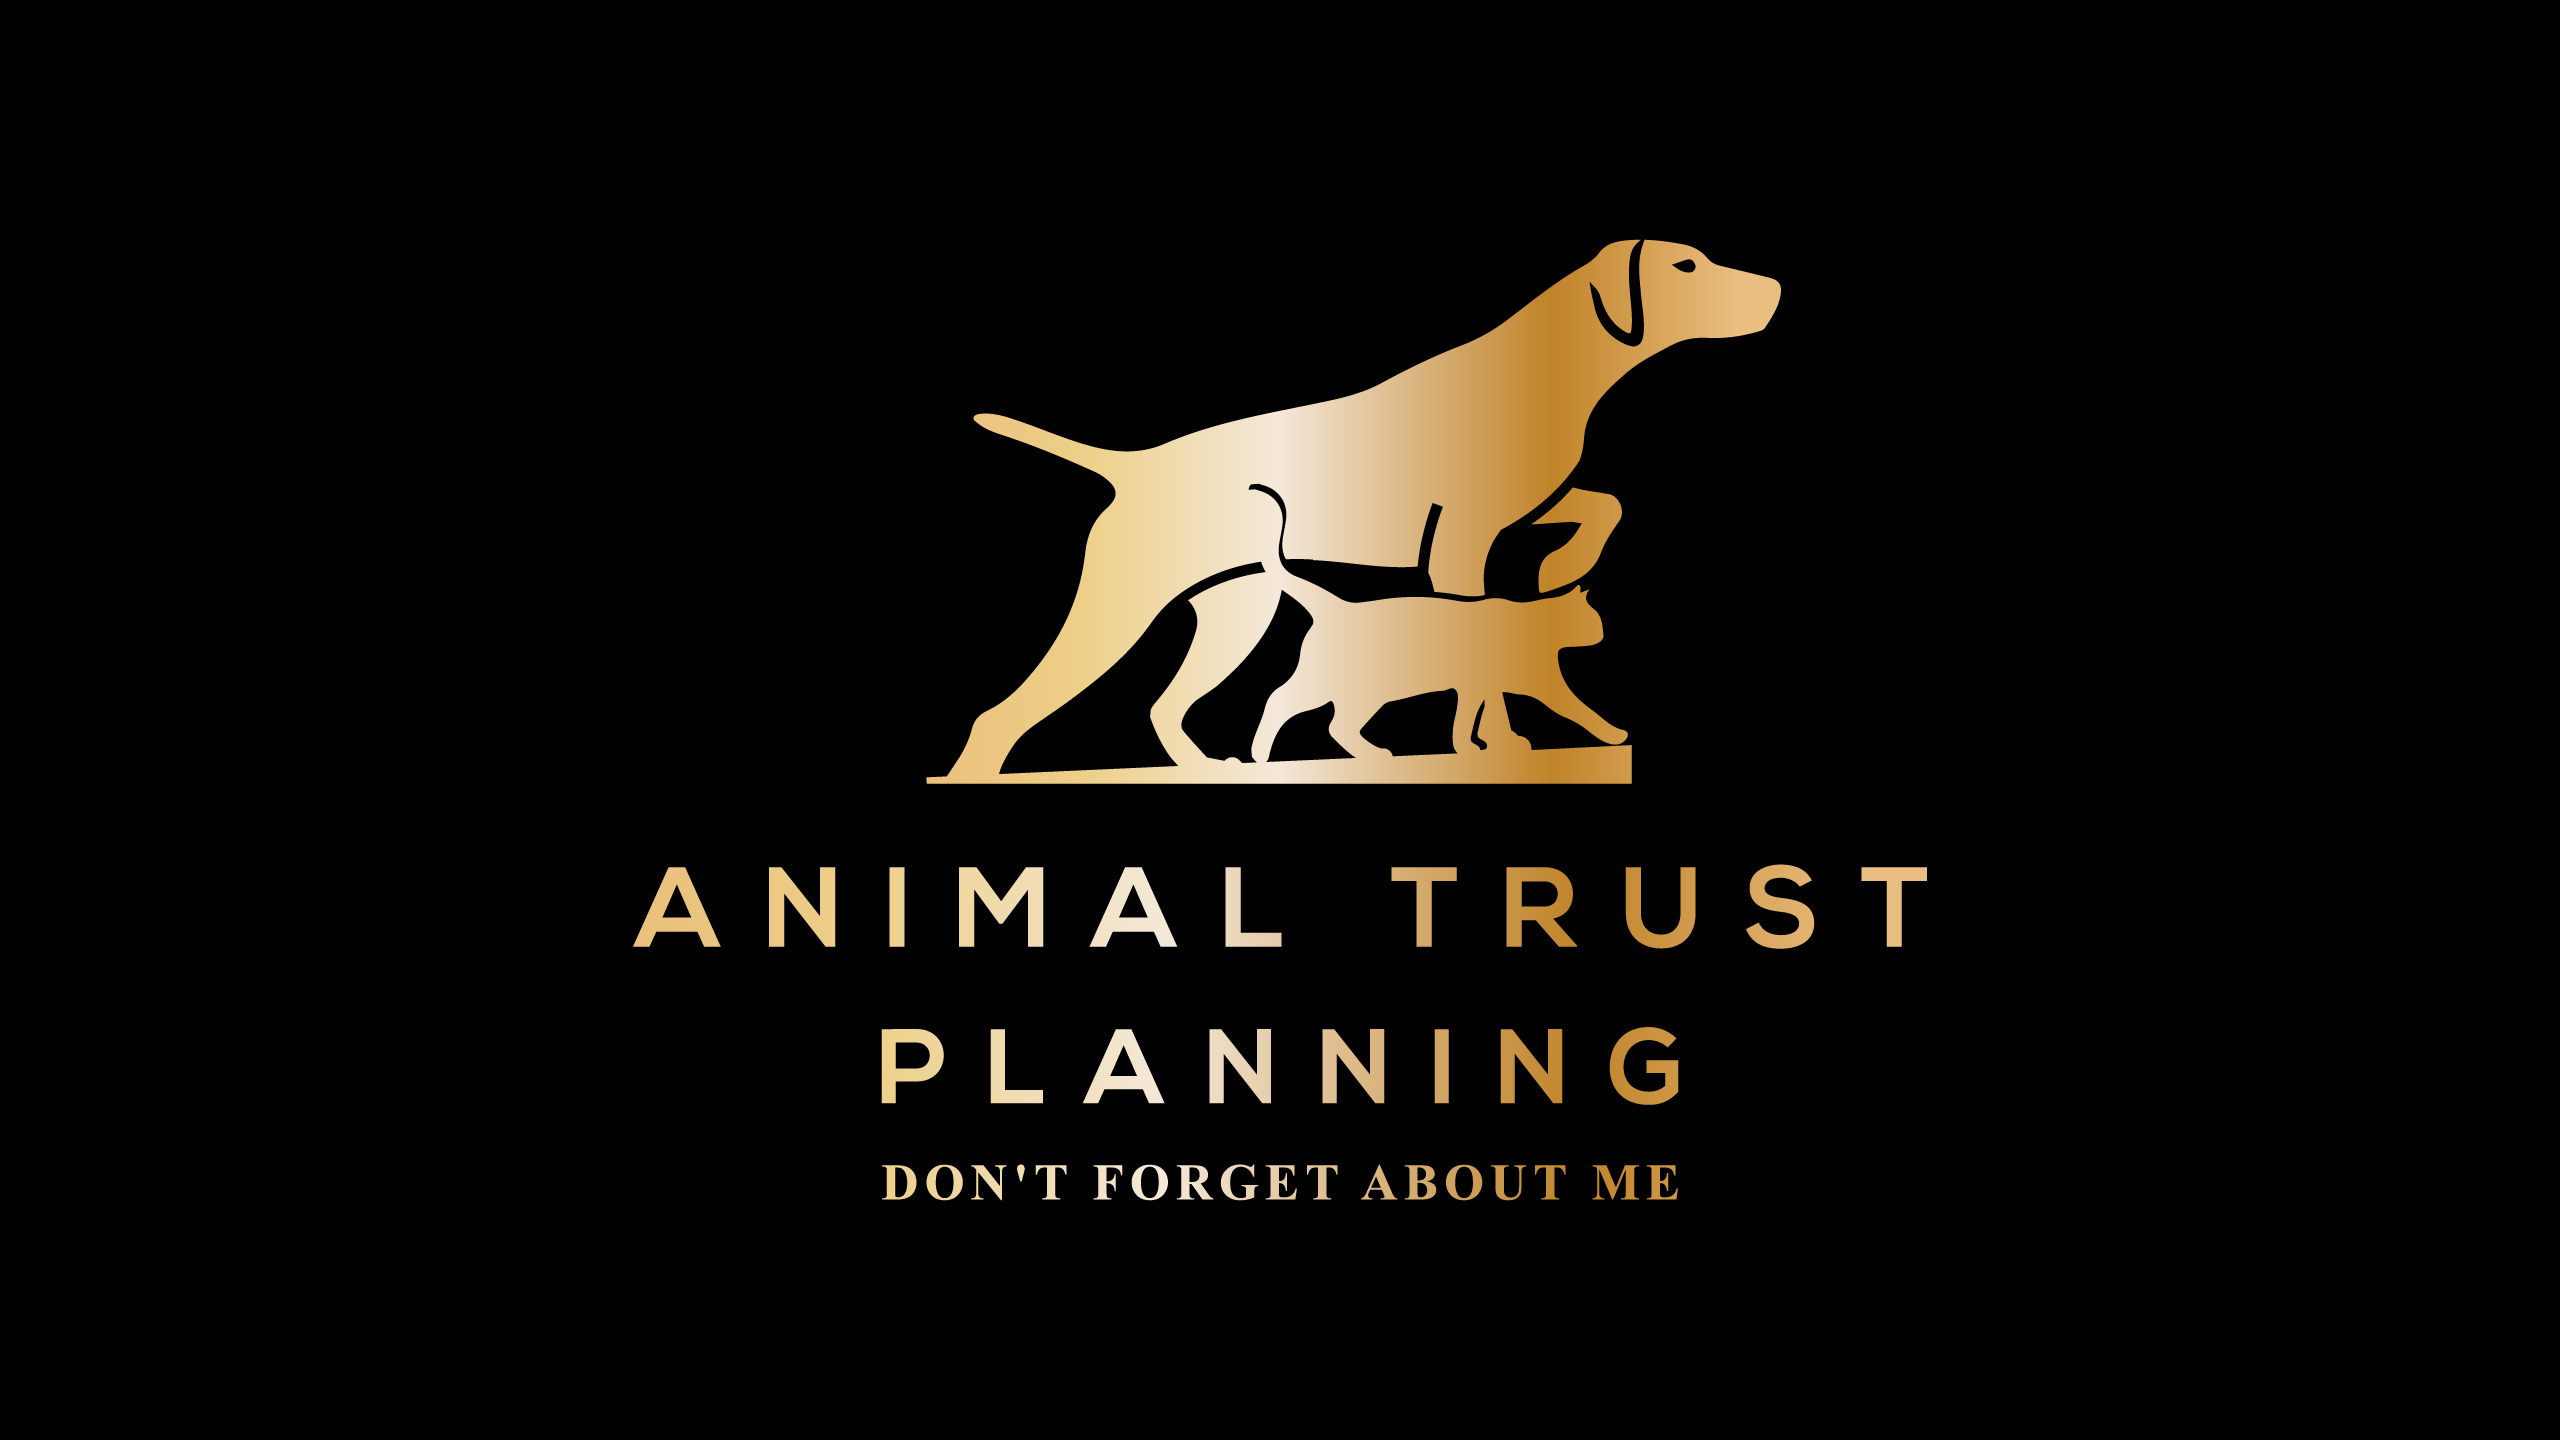 Animal Trust Planning, a Company Trying to Protect Americans Animals During the Coronavirus Epidemic